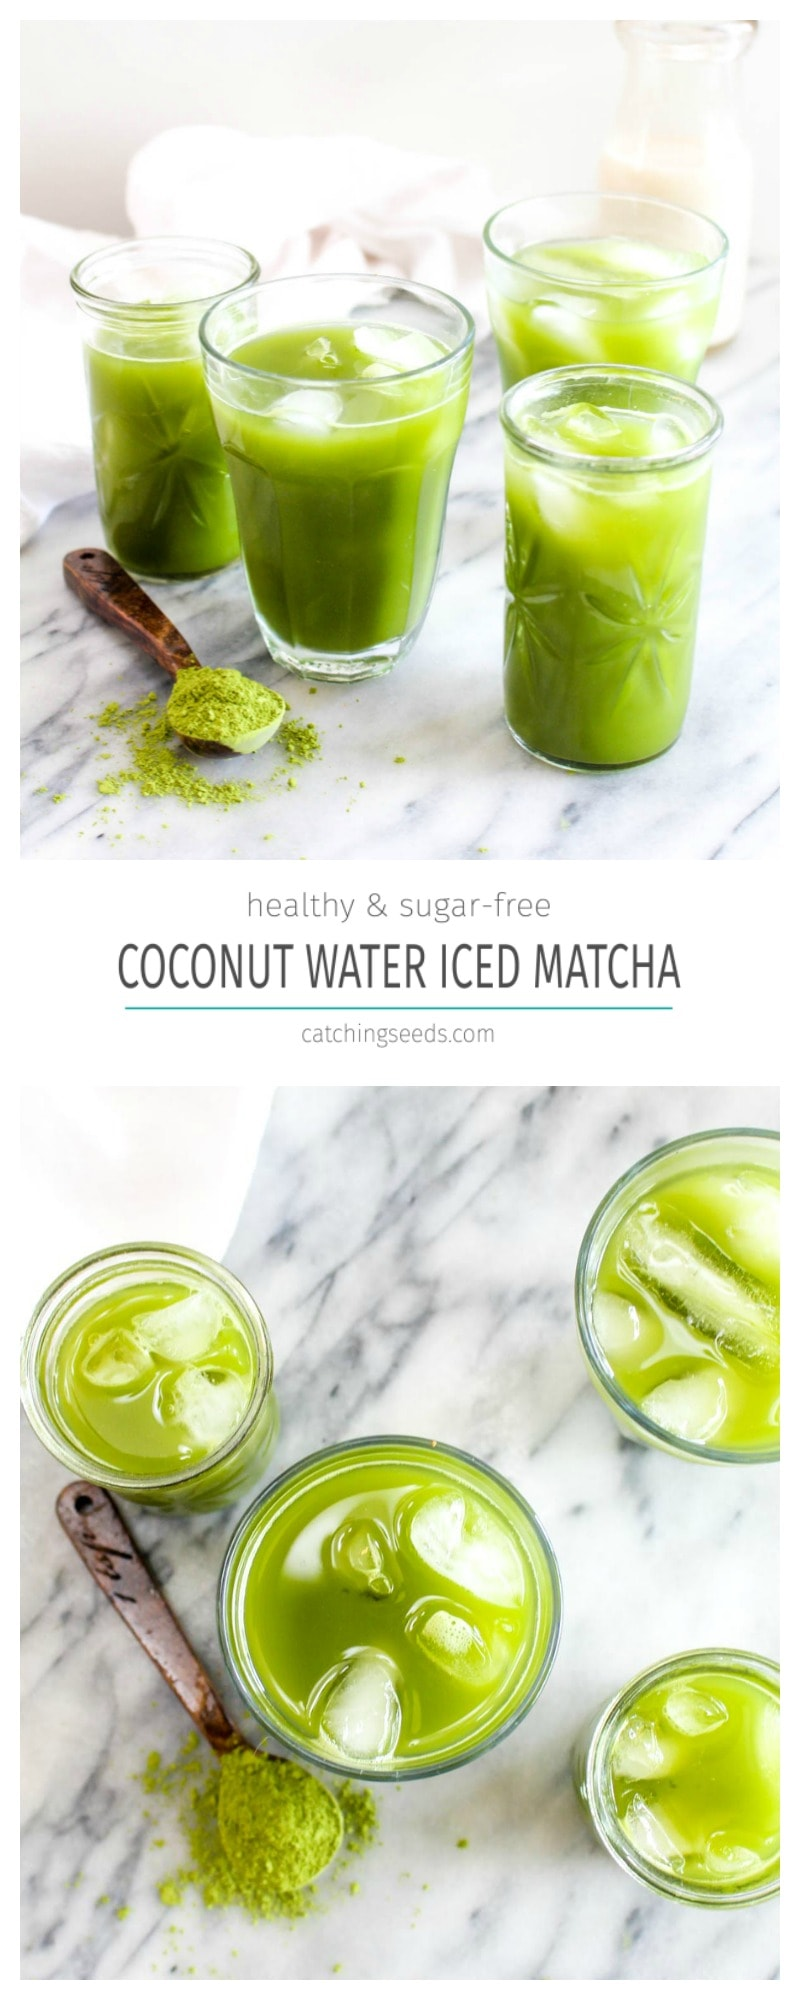 A collage image of coconut water iced matcha.